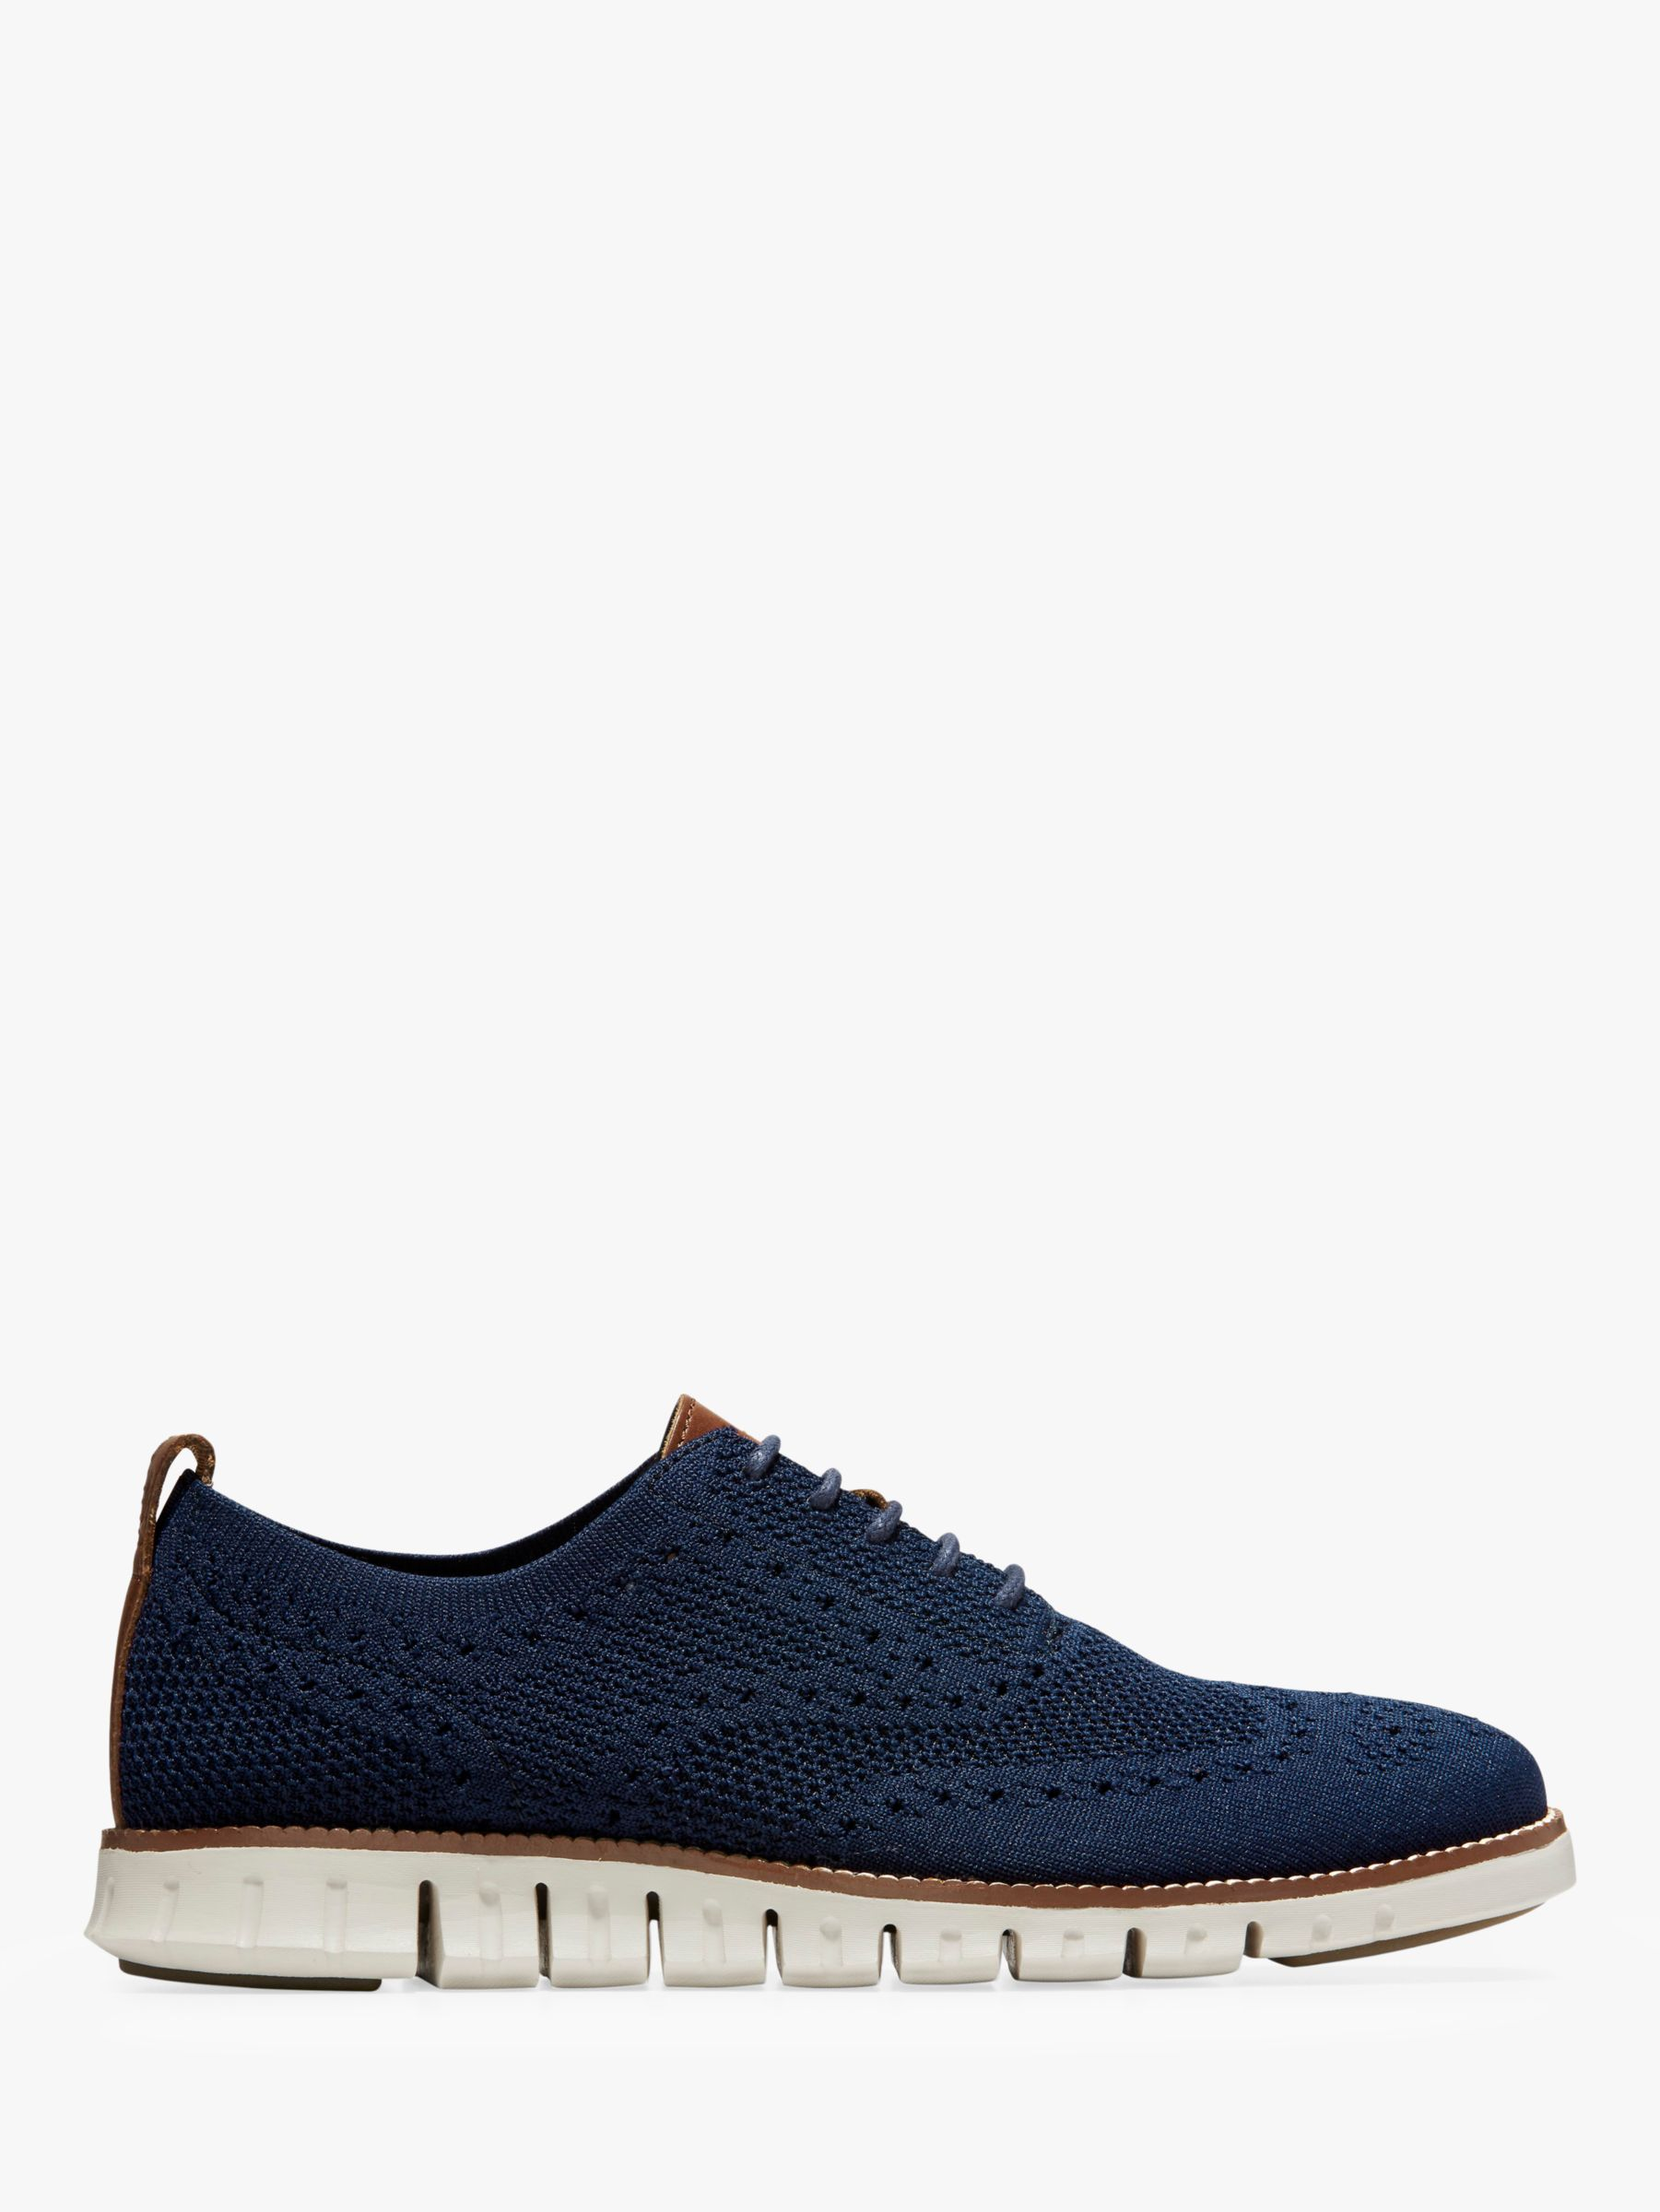 Cole Haan Cole Haan Zerogrand Stitchlite Knitted Oxford Shoes, Marine Blue